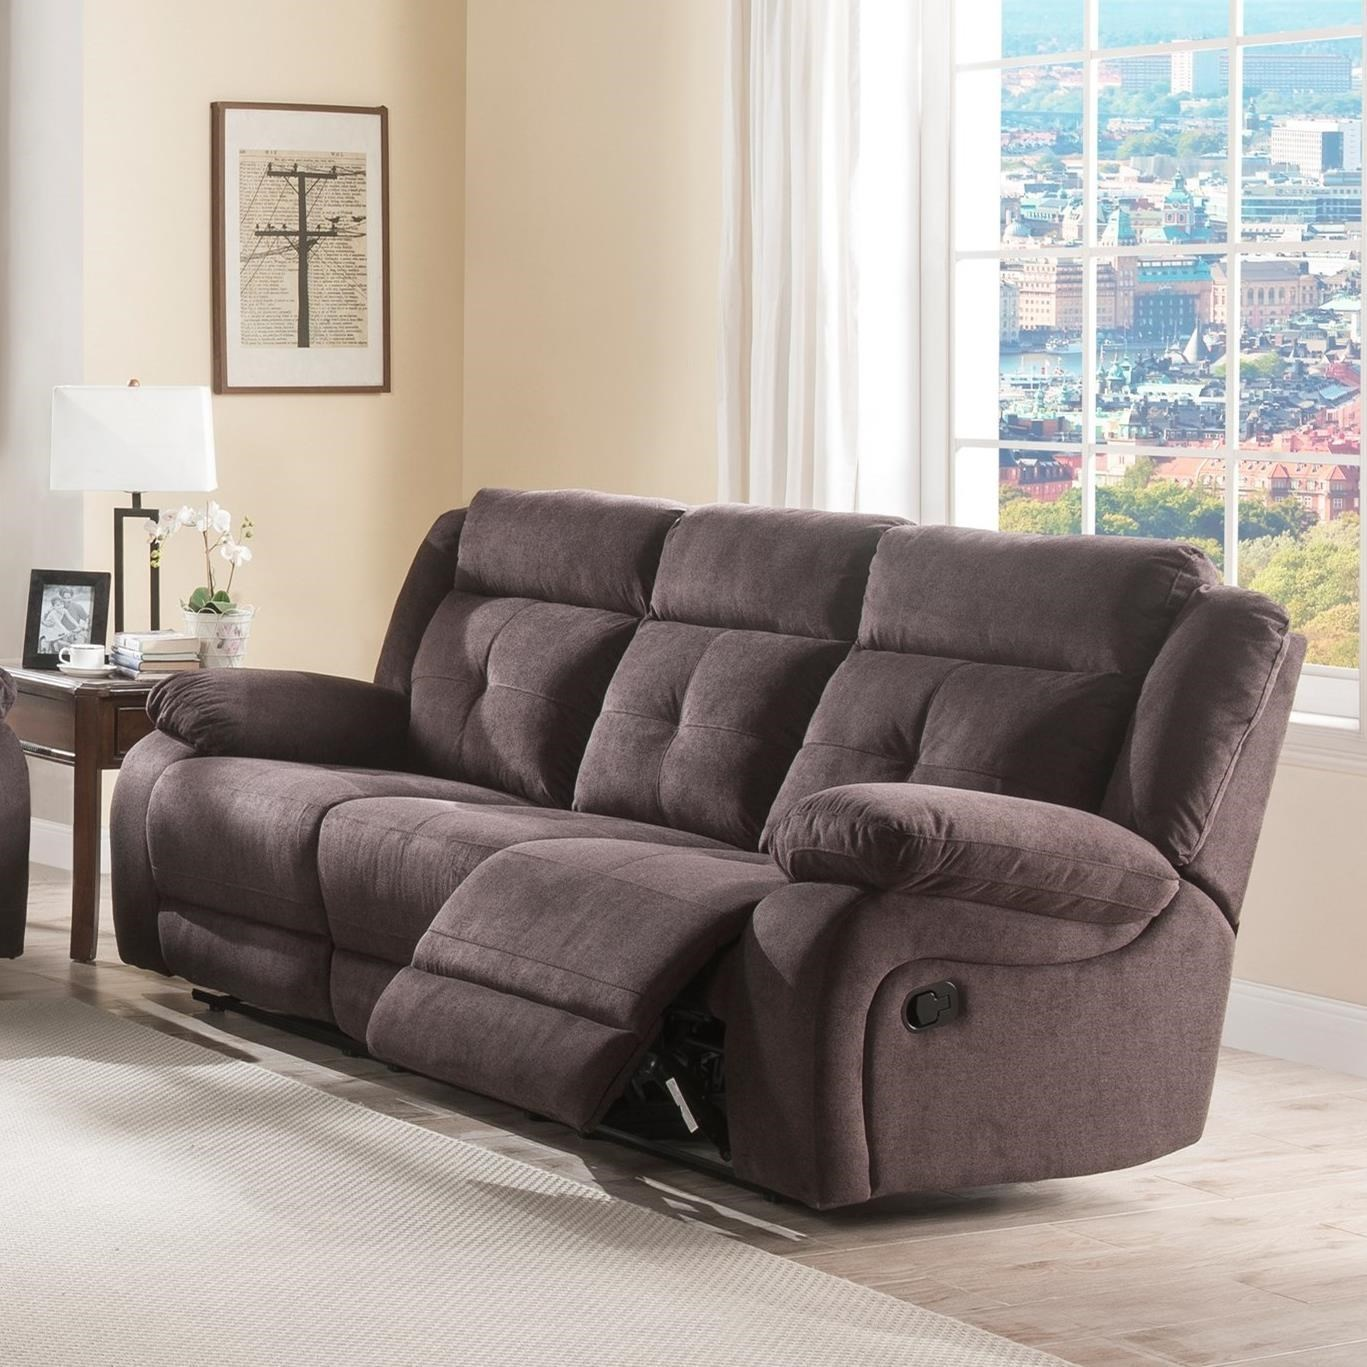 Lifestyle U12623 Casual Reclining Sofa With Pillow Arms   Becker Furniture  World   Reclining Sofas